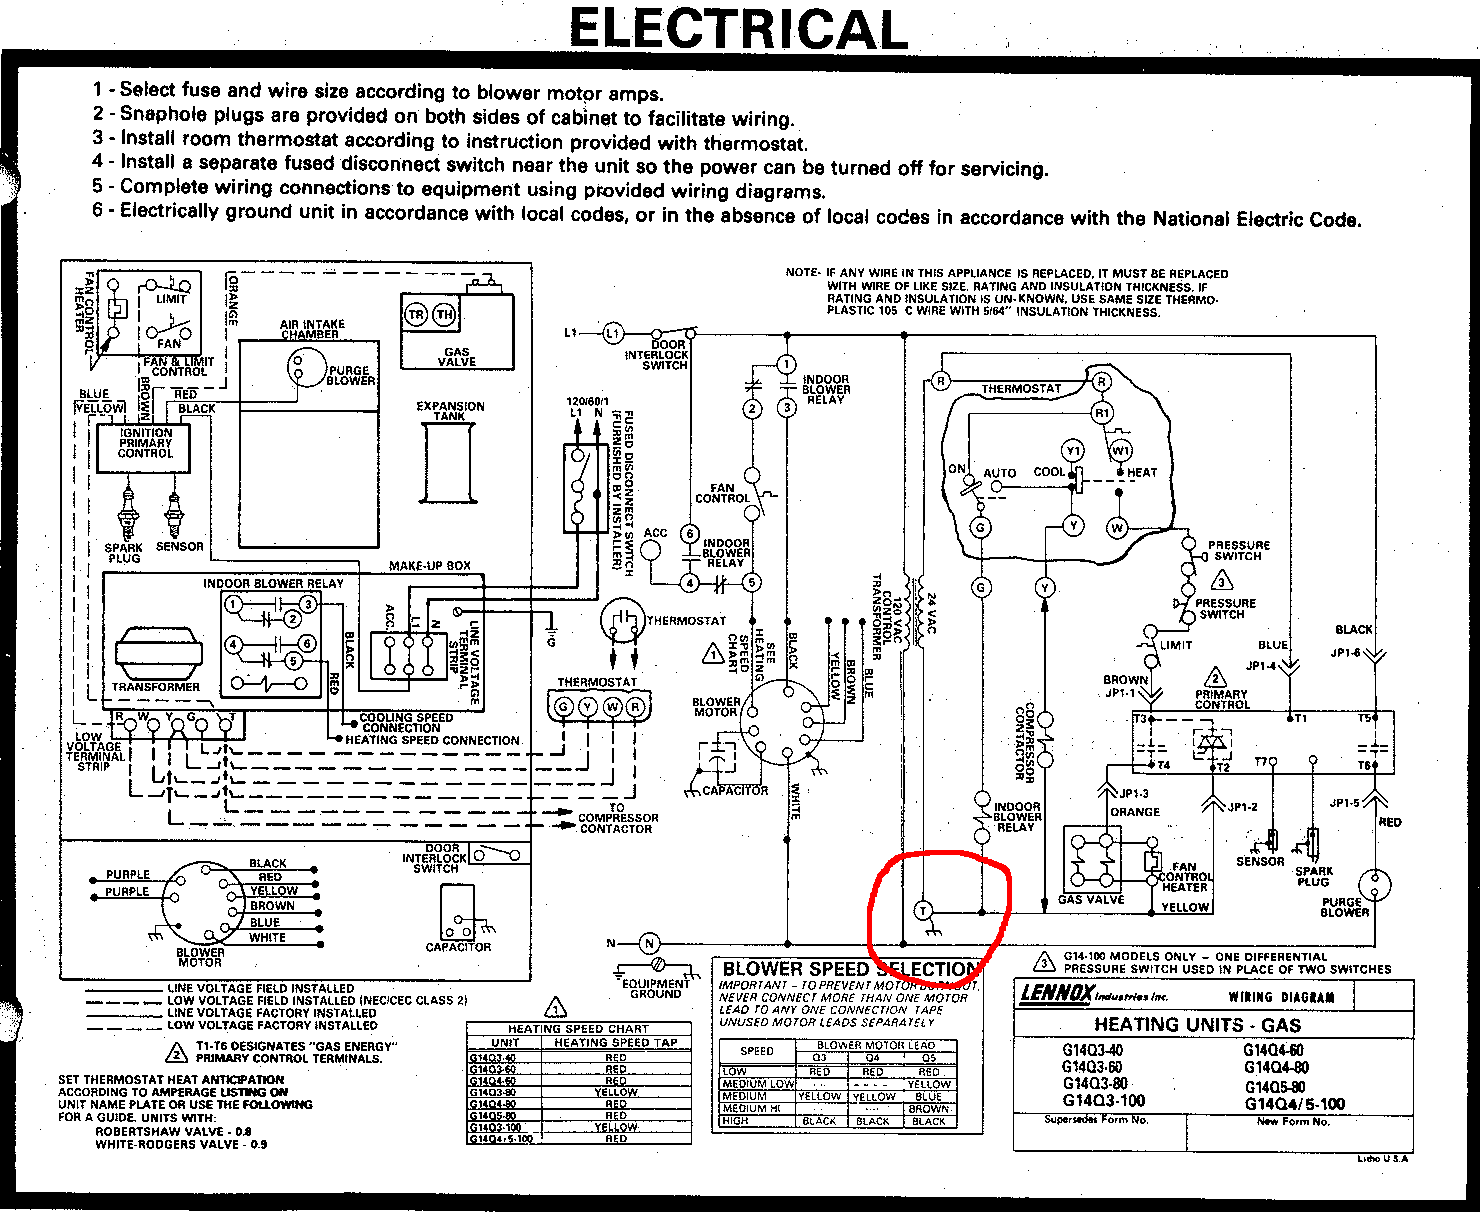 Remarkable Gas Furnace Wiring Diagram Pdf Basic Electronics Wiring Diagram Wiring Cloud Rometaidewilluminateatxorg